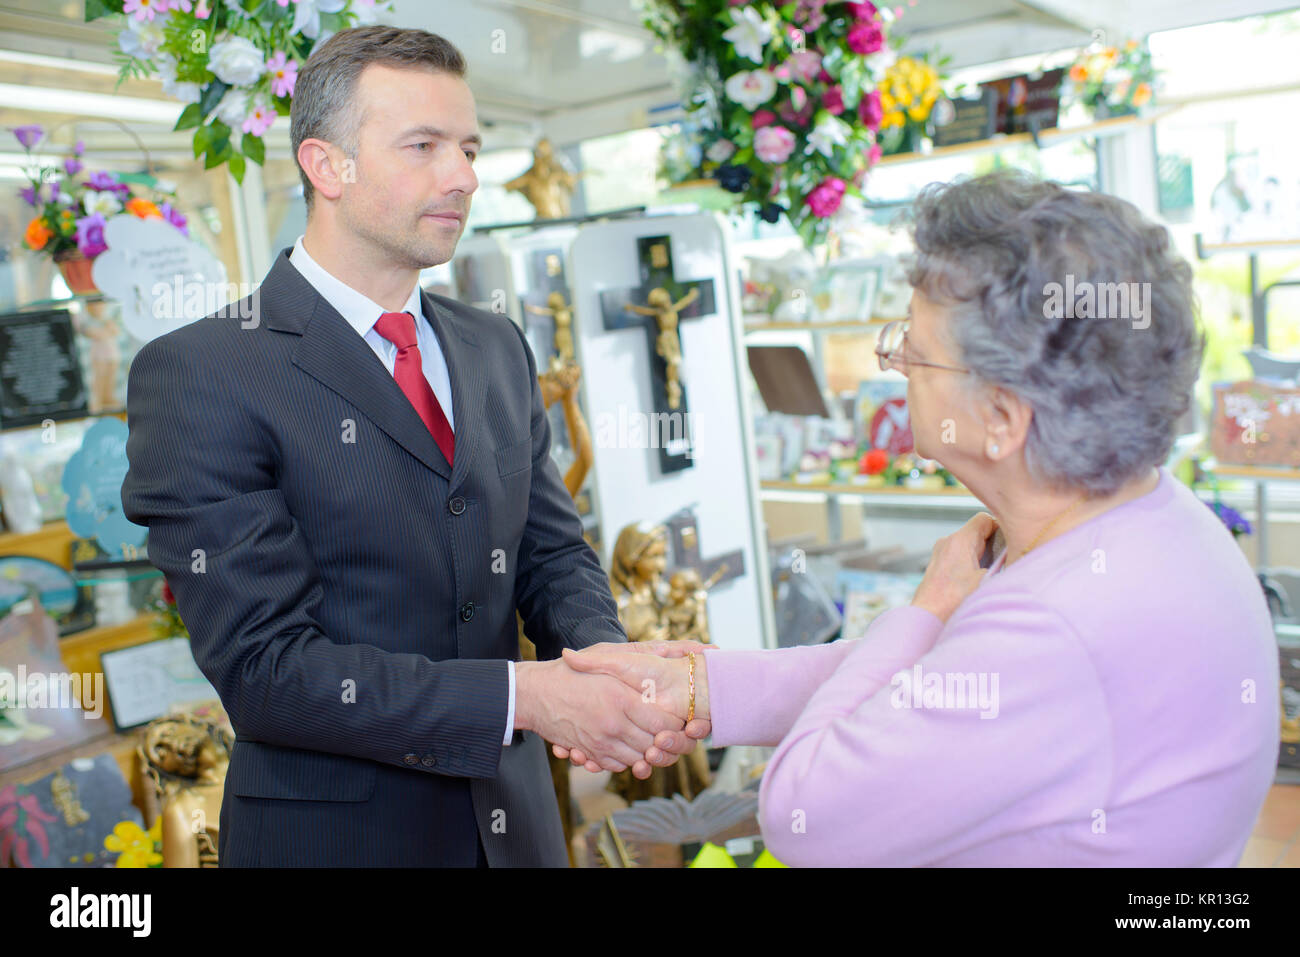 greeting a customer - Stock Image